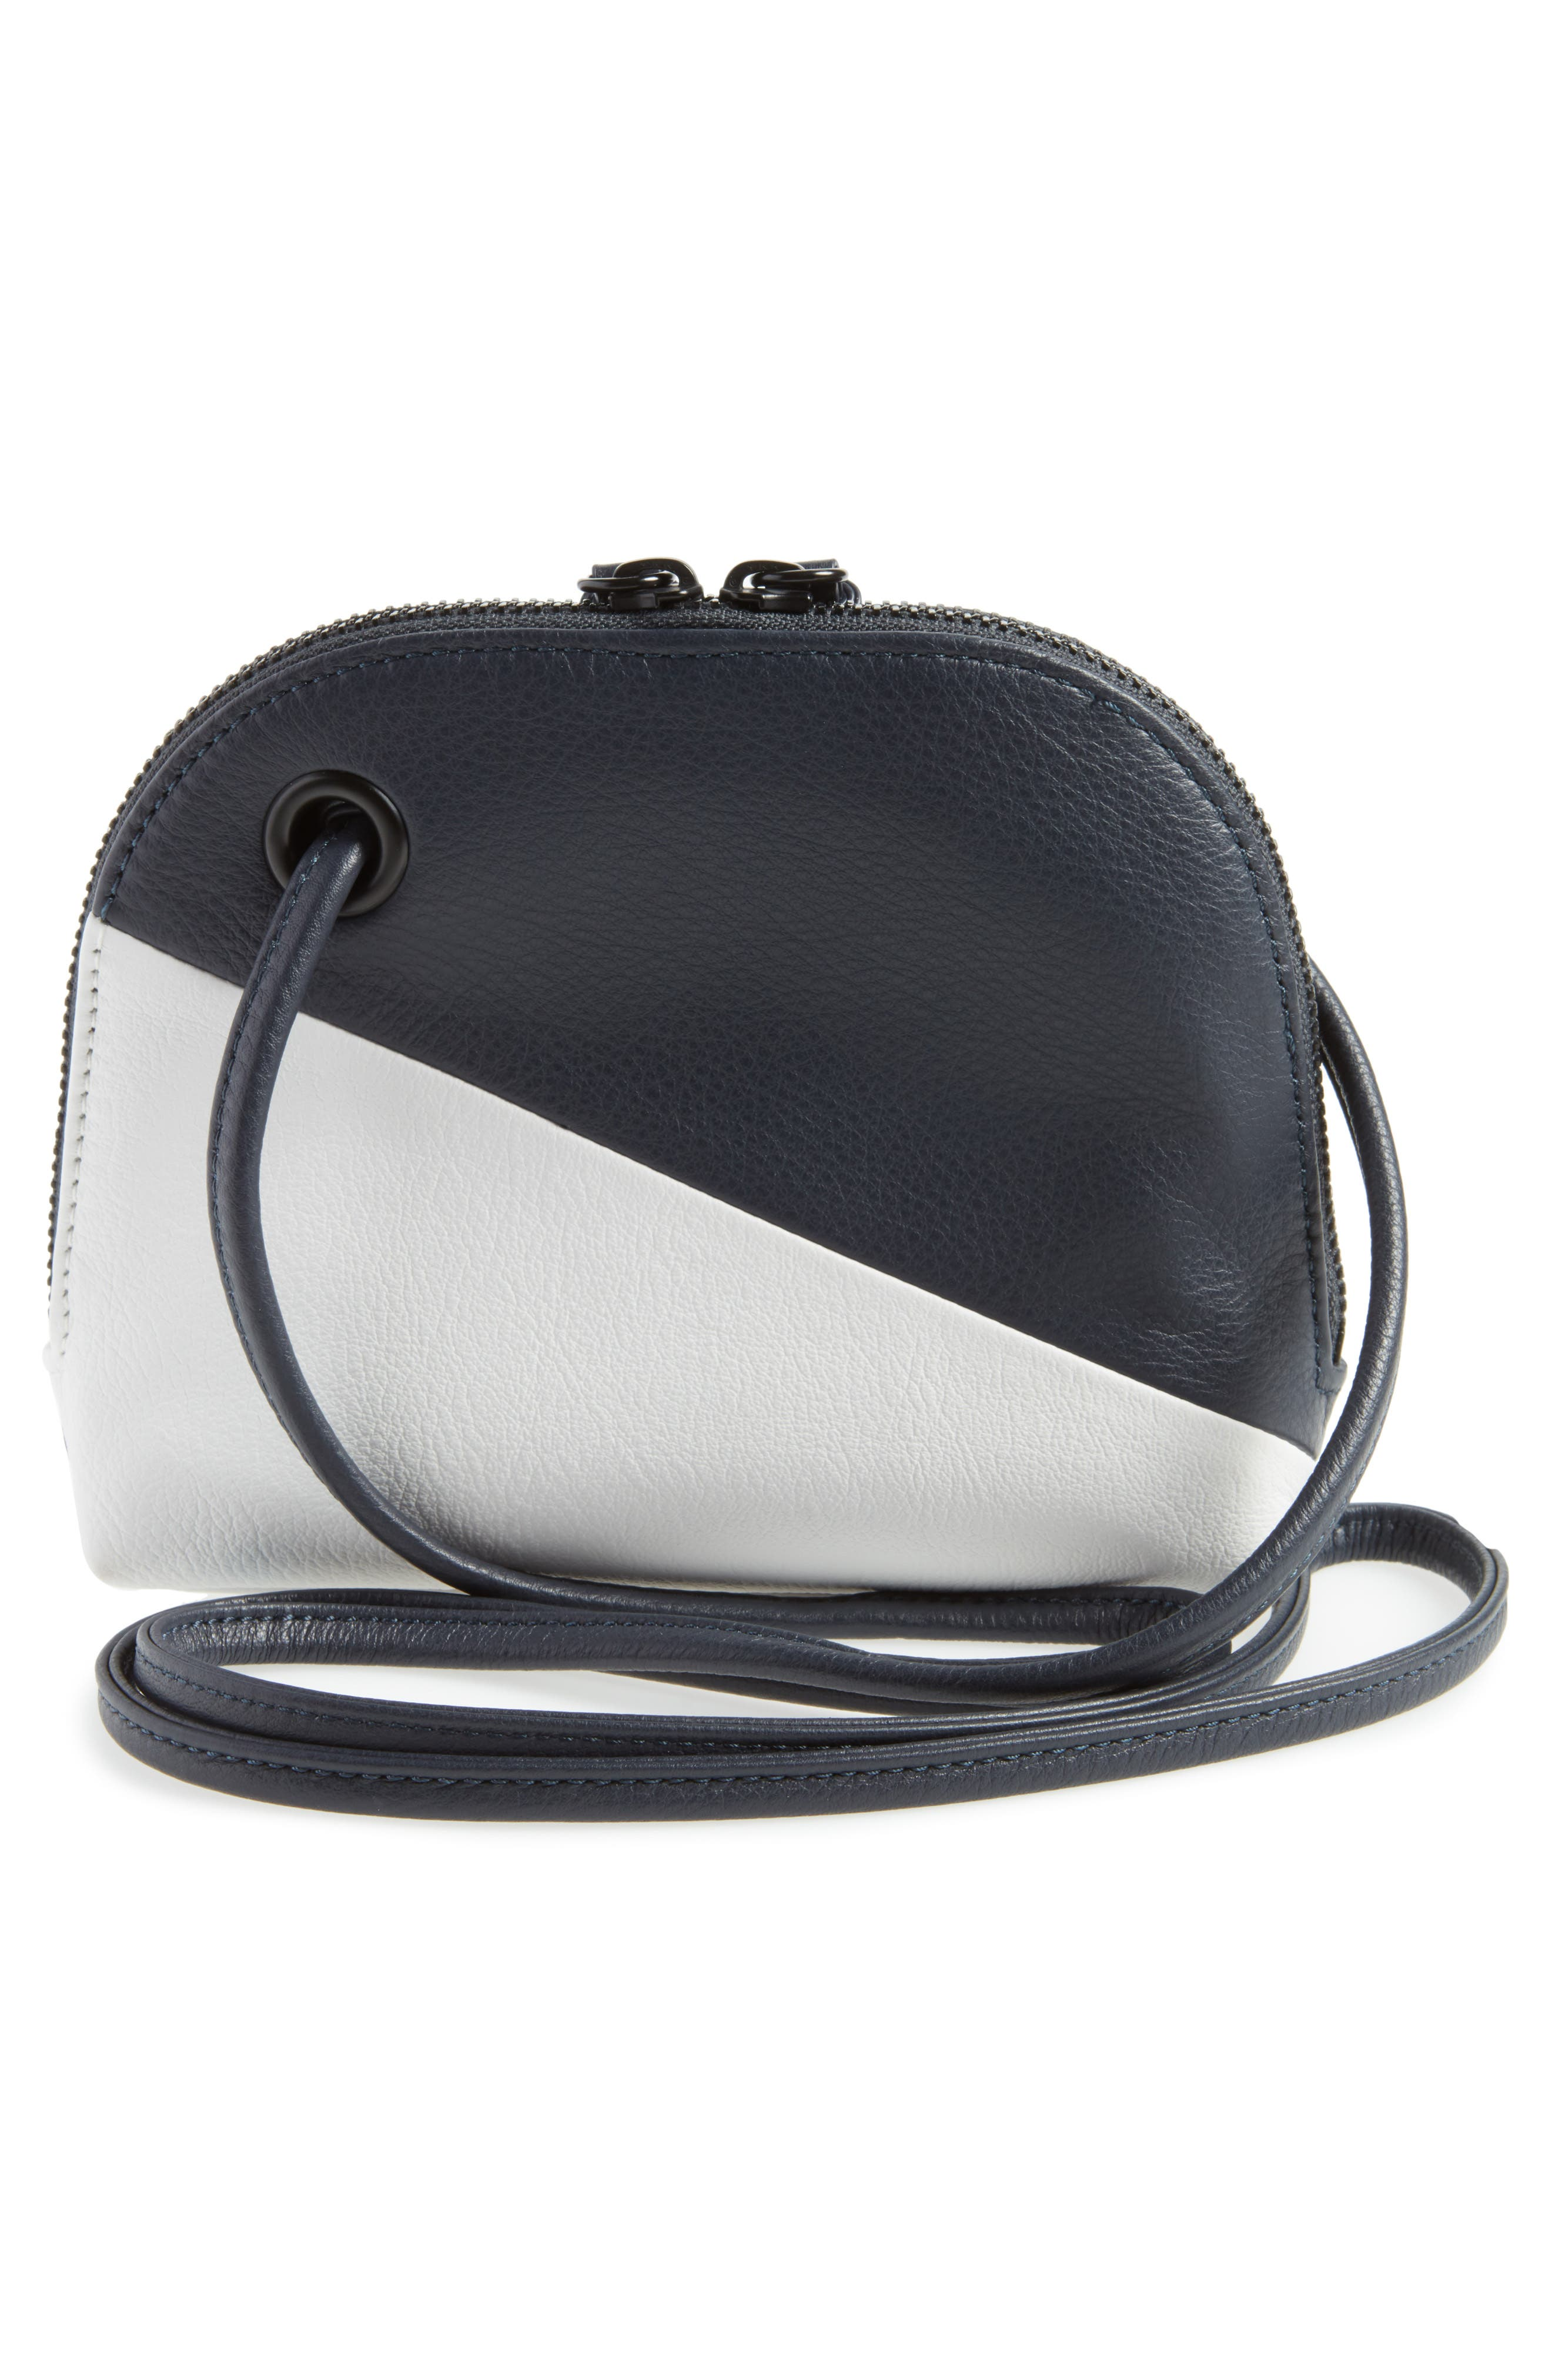 Kay Colorblock Leather Crossbody,                             Alternate thumbnail 3, color,                             NAVY/ WHITE